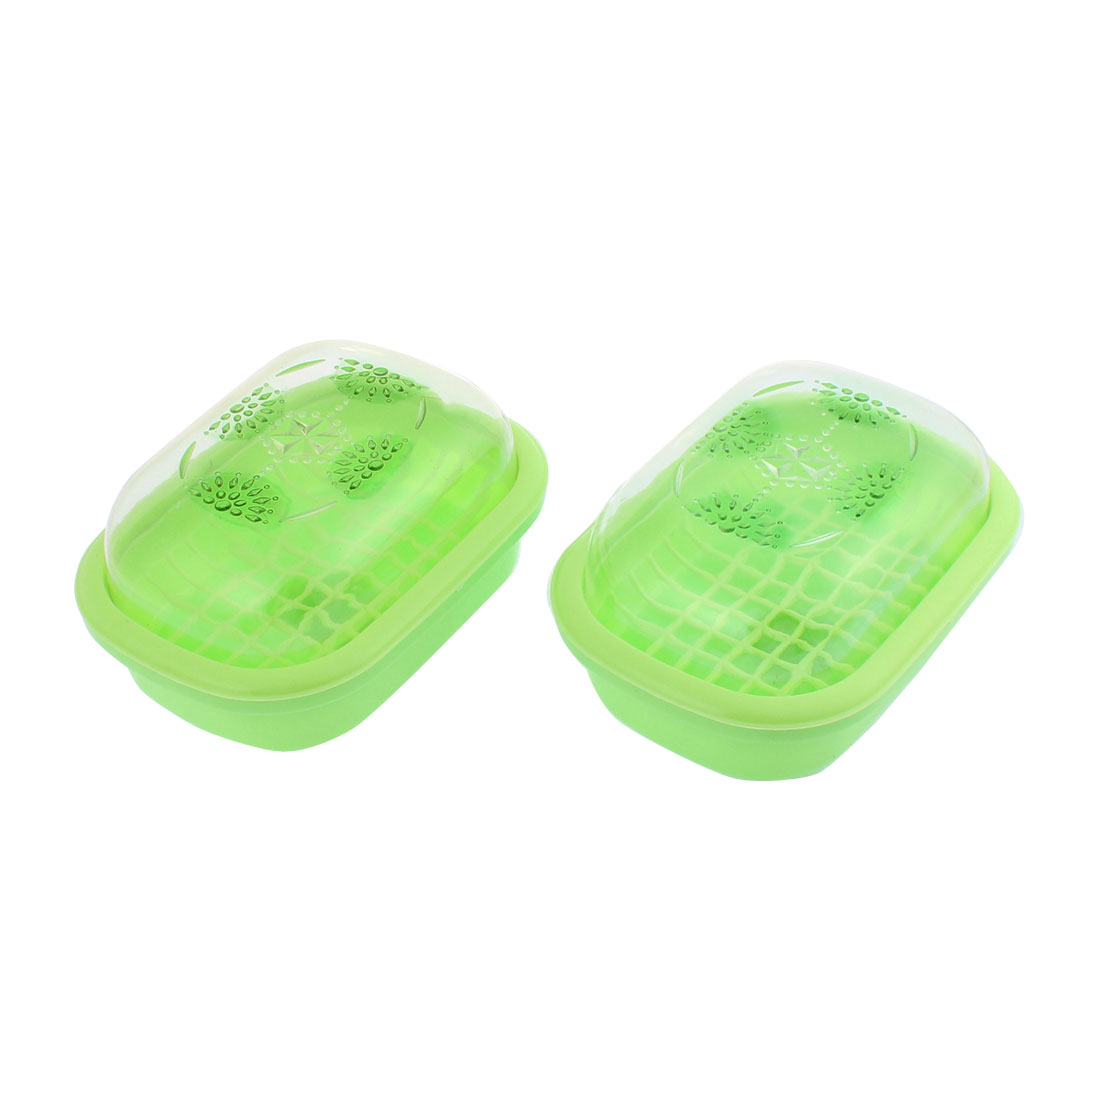 Home Plastic Rhinestone Pattern Dual Layer Soap Dish Case Holder Green 2 Pcs